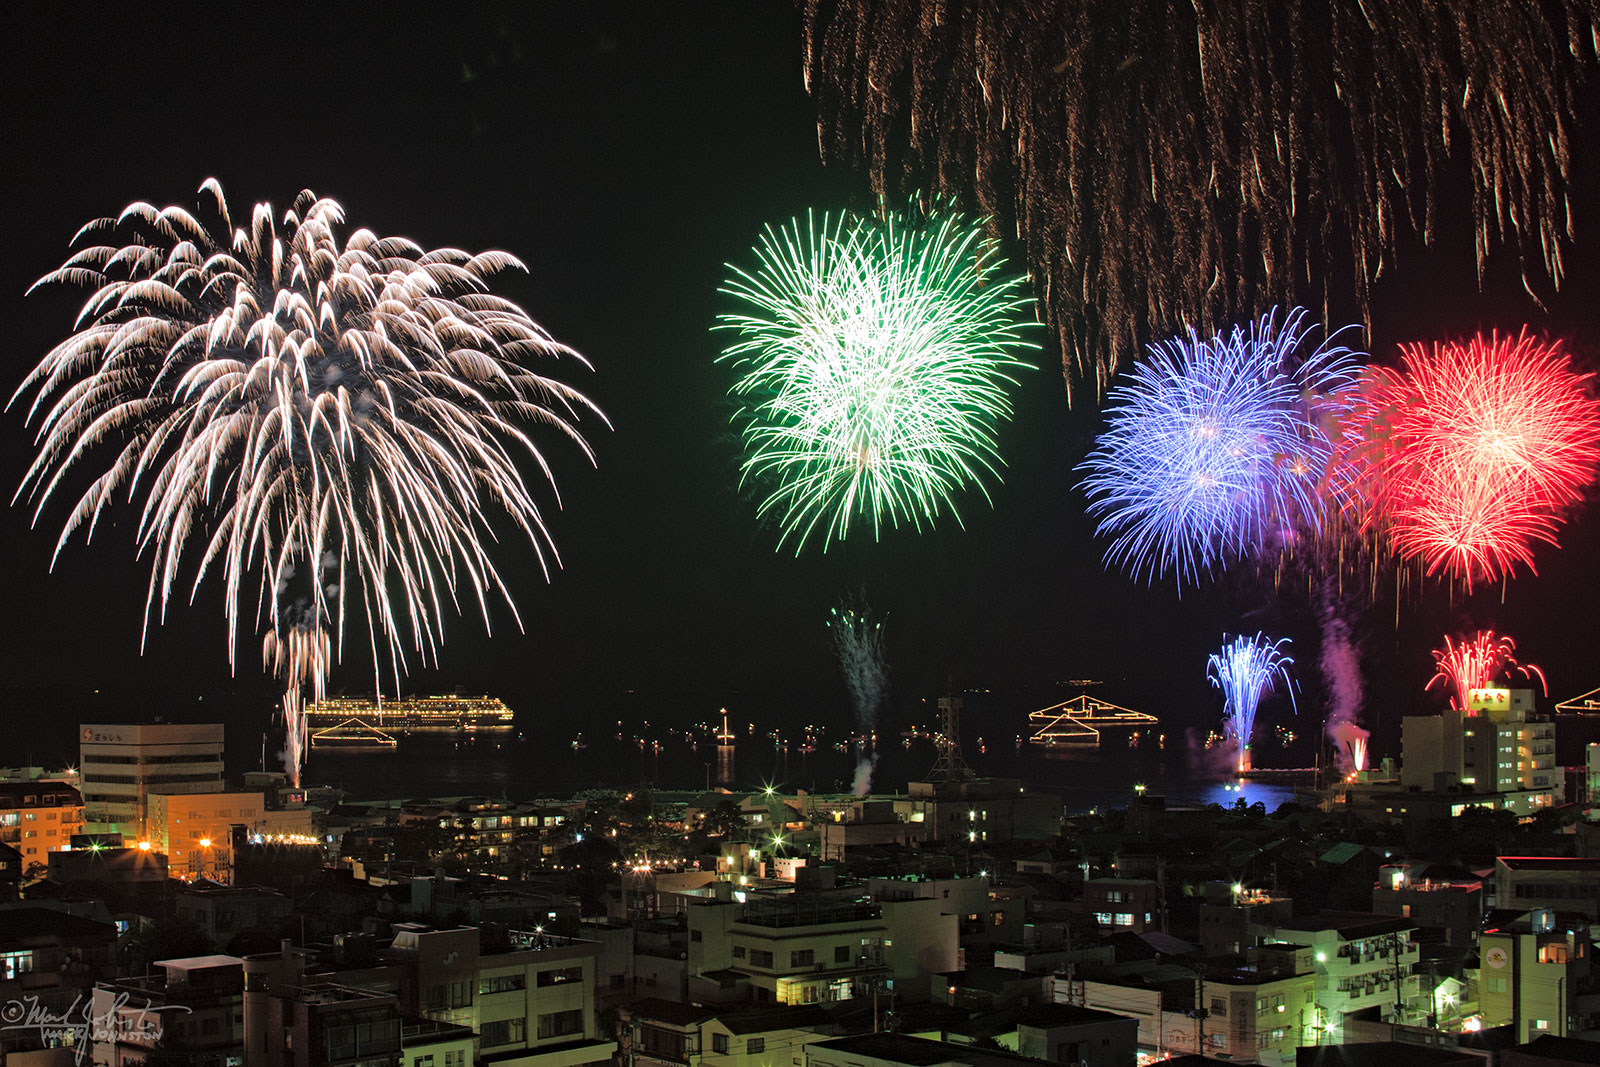 Fireworks along the waterfront, Ito, Japan.